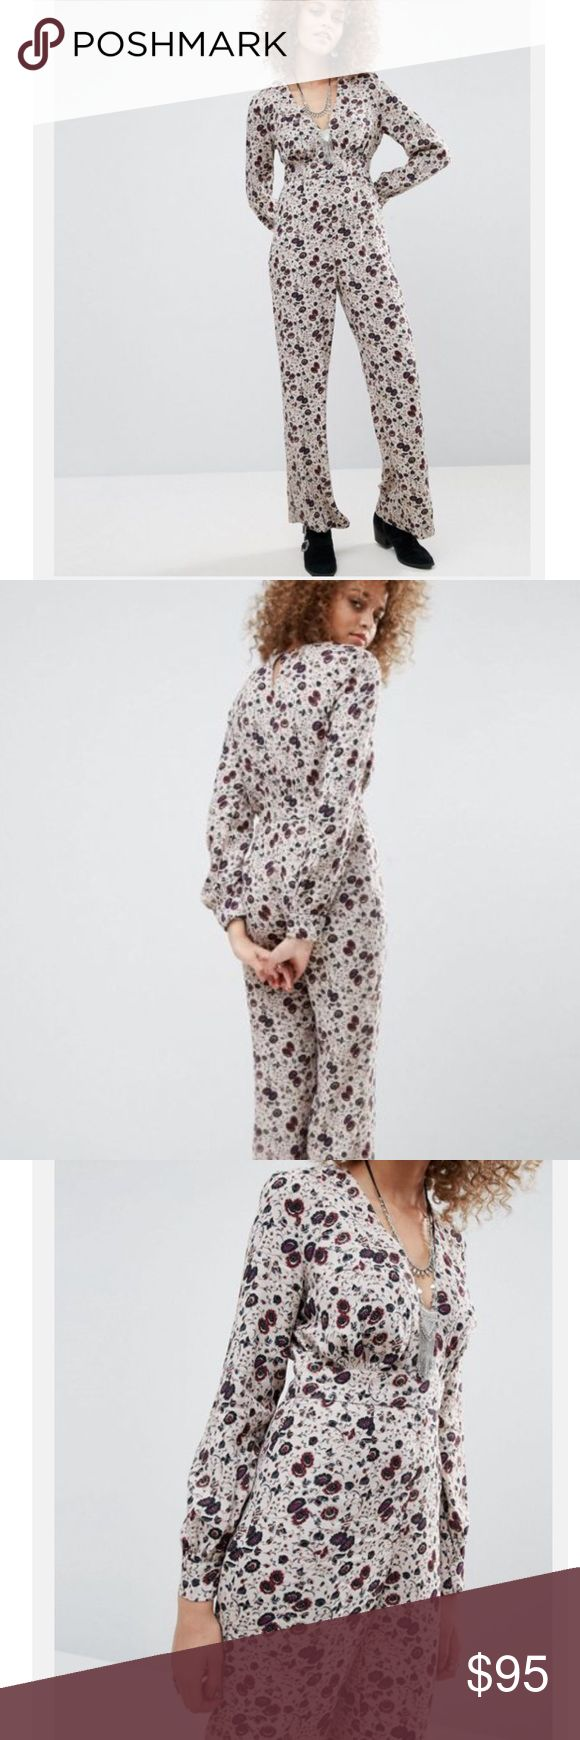 Free People Floral Jumpsuit Fulfill all your bohemian dreams with this show-stopping Free People Jumpsuit featuring a lightweight printed fabric, plunge neck, fitted empire band, flared leg, and button-keyhole back. Made of 52% Viscose, 48% Rayon in a Size 0. New! Never worn or washed. Retail $252. Free People Dresses